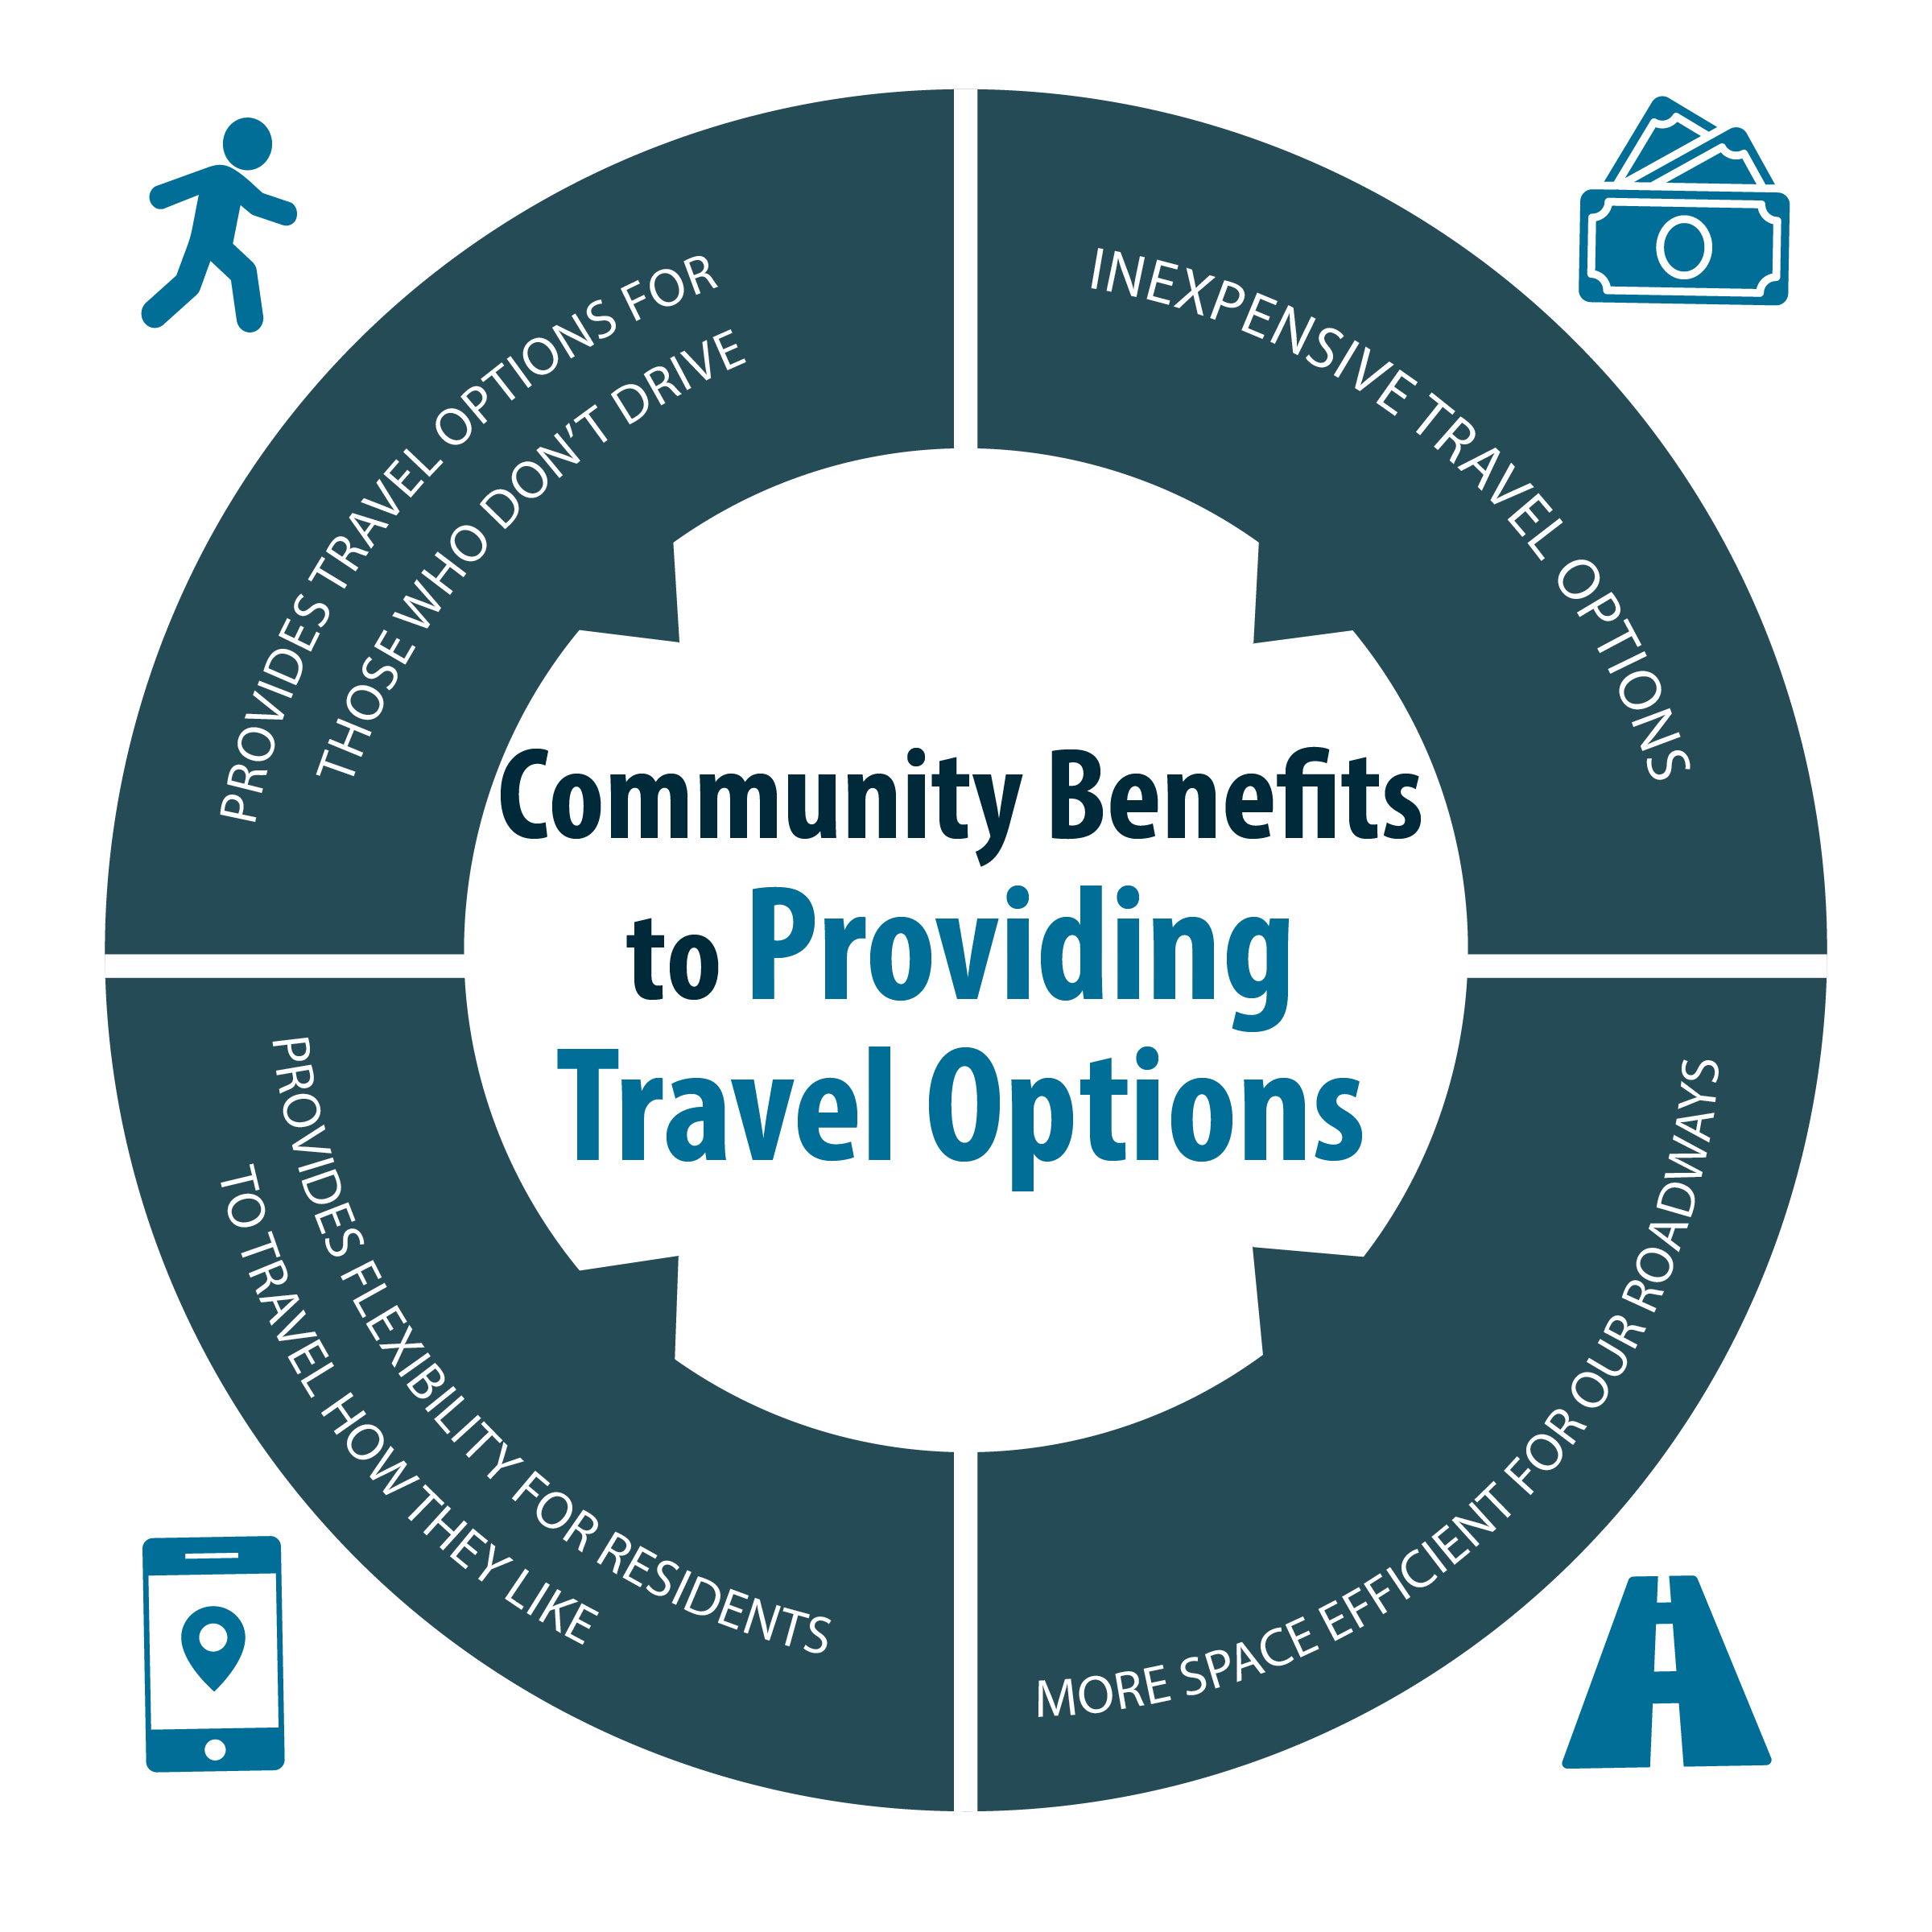 Benefits of providing travel options